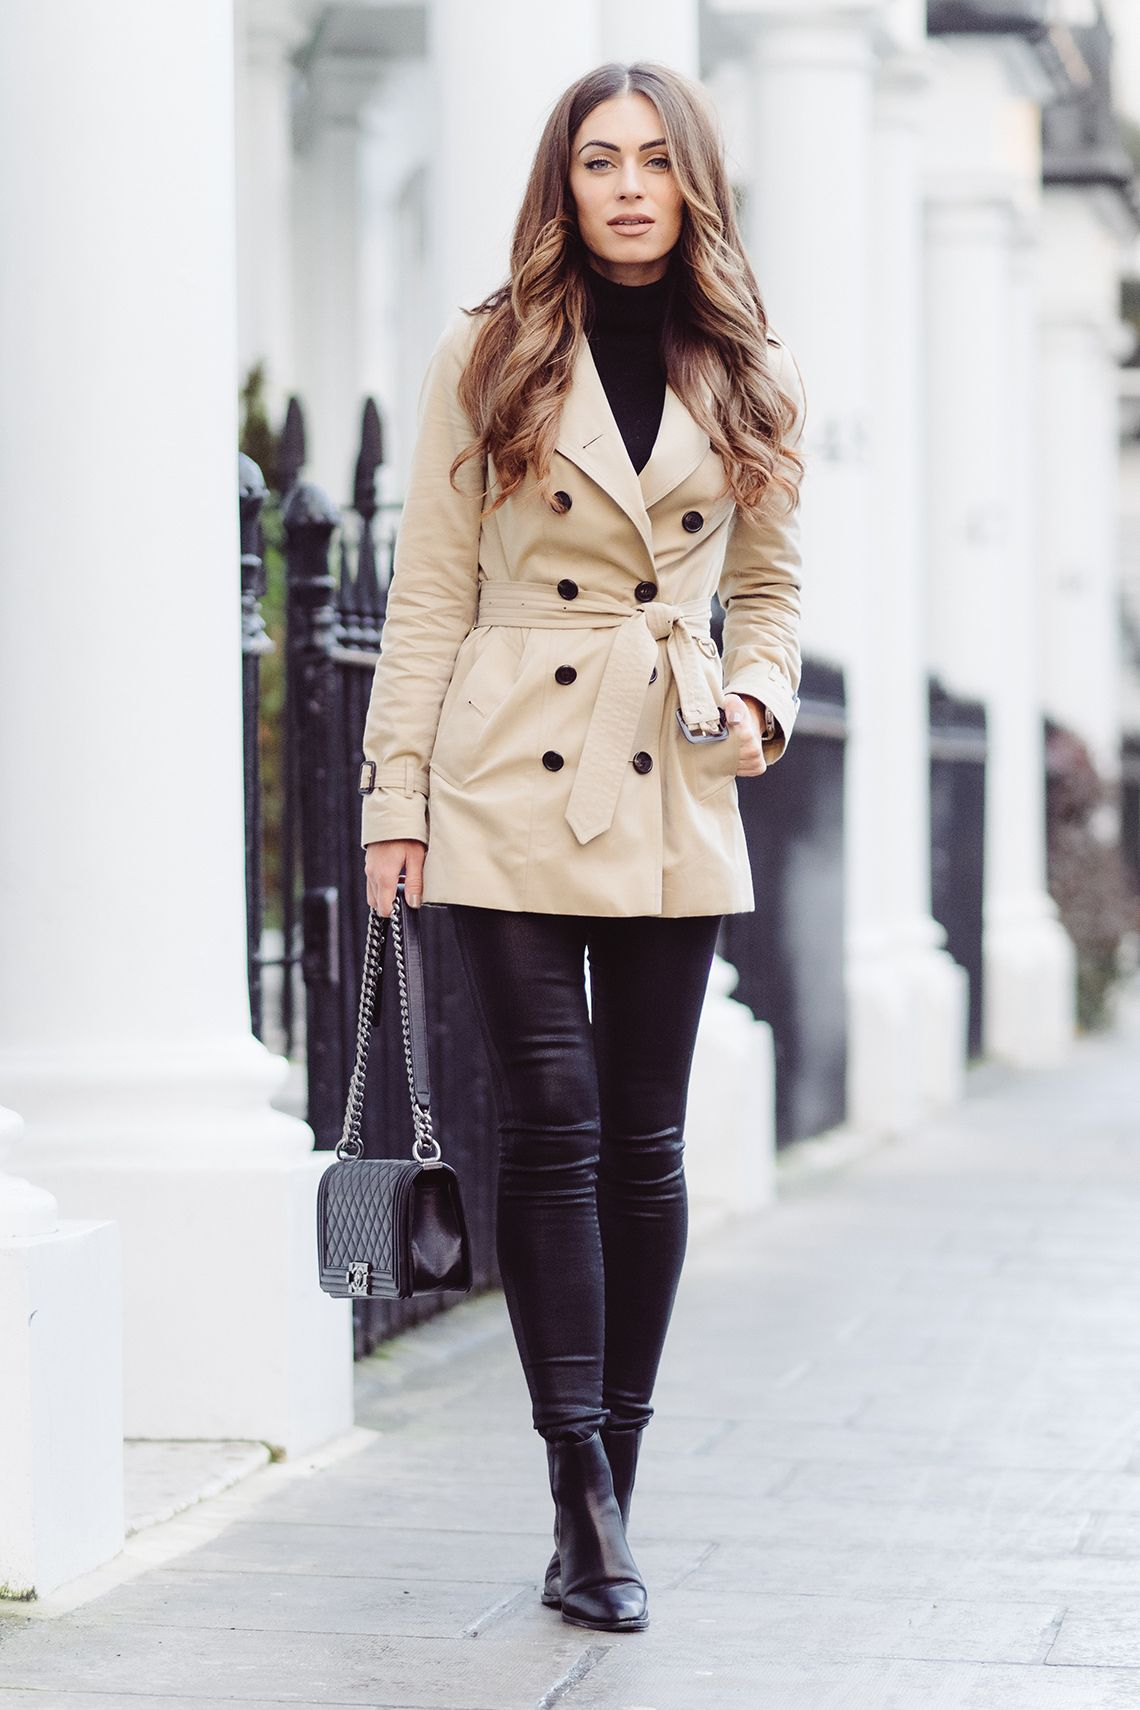 Cute Fall Outfits How to Dress Well, Feel Great And Look